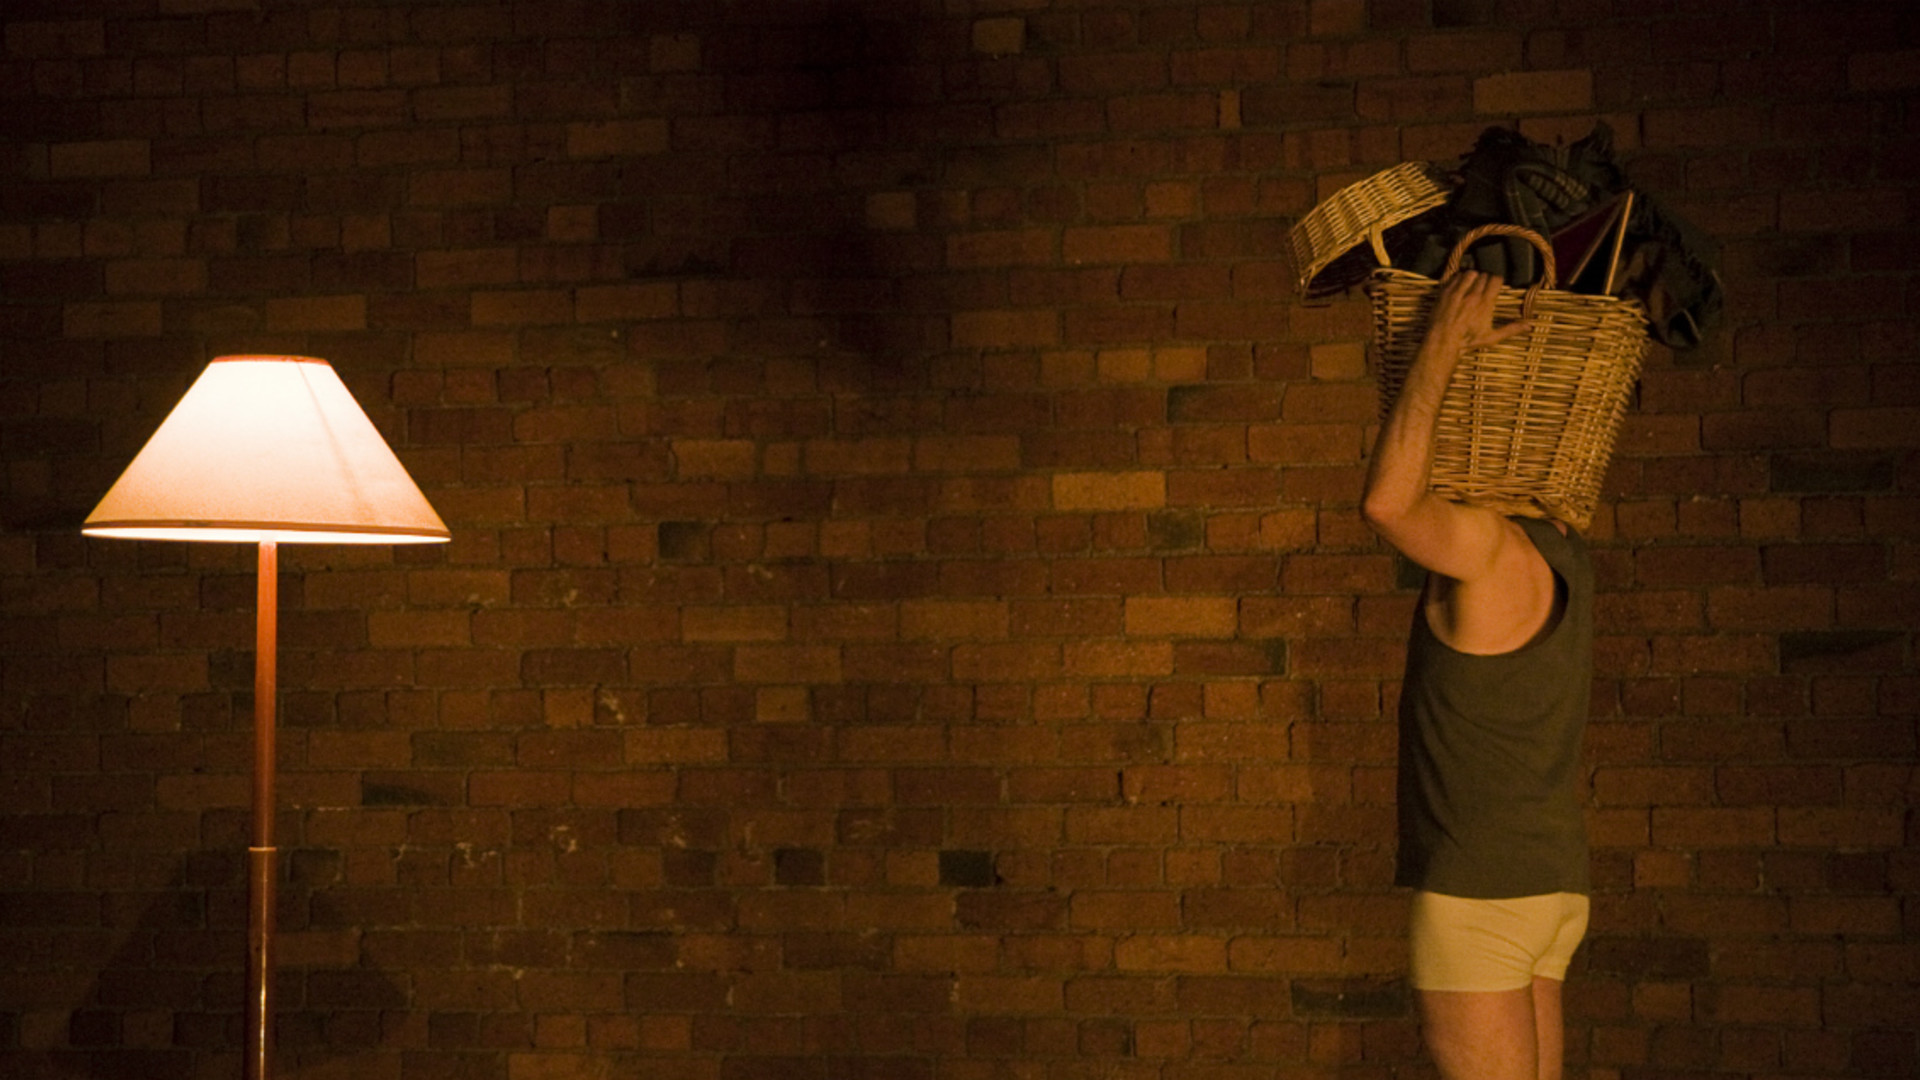 A male dancer holding a basket on his shoulder and facing a lit standard lamp in front of a brick wall